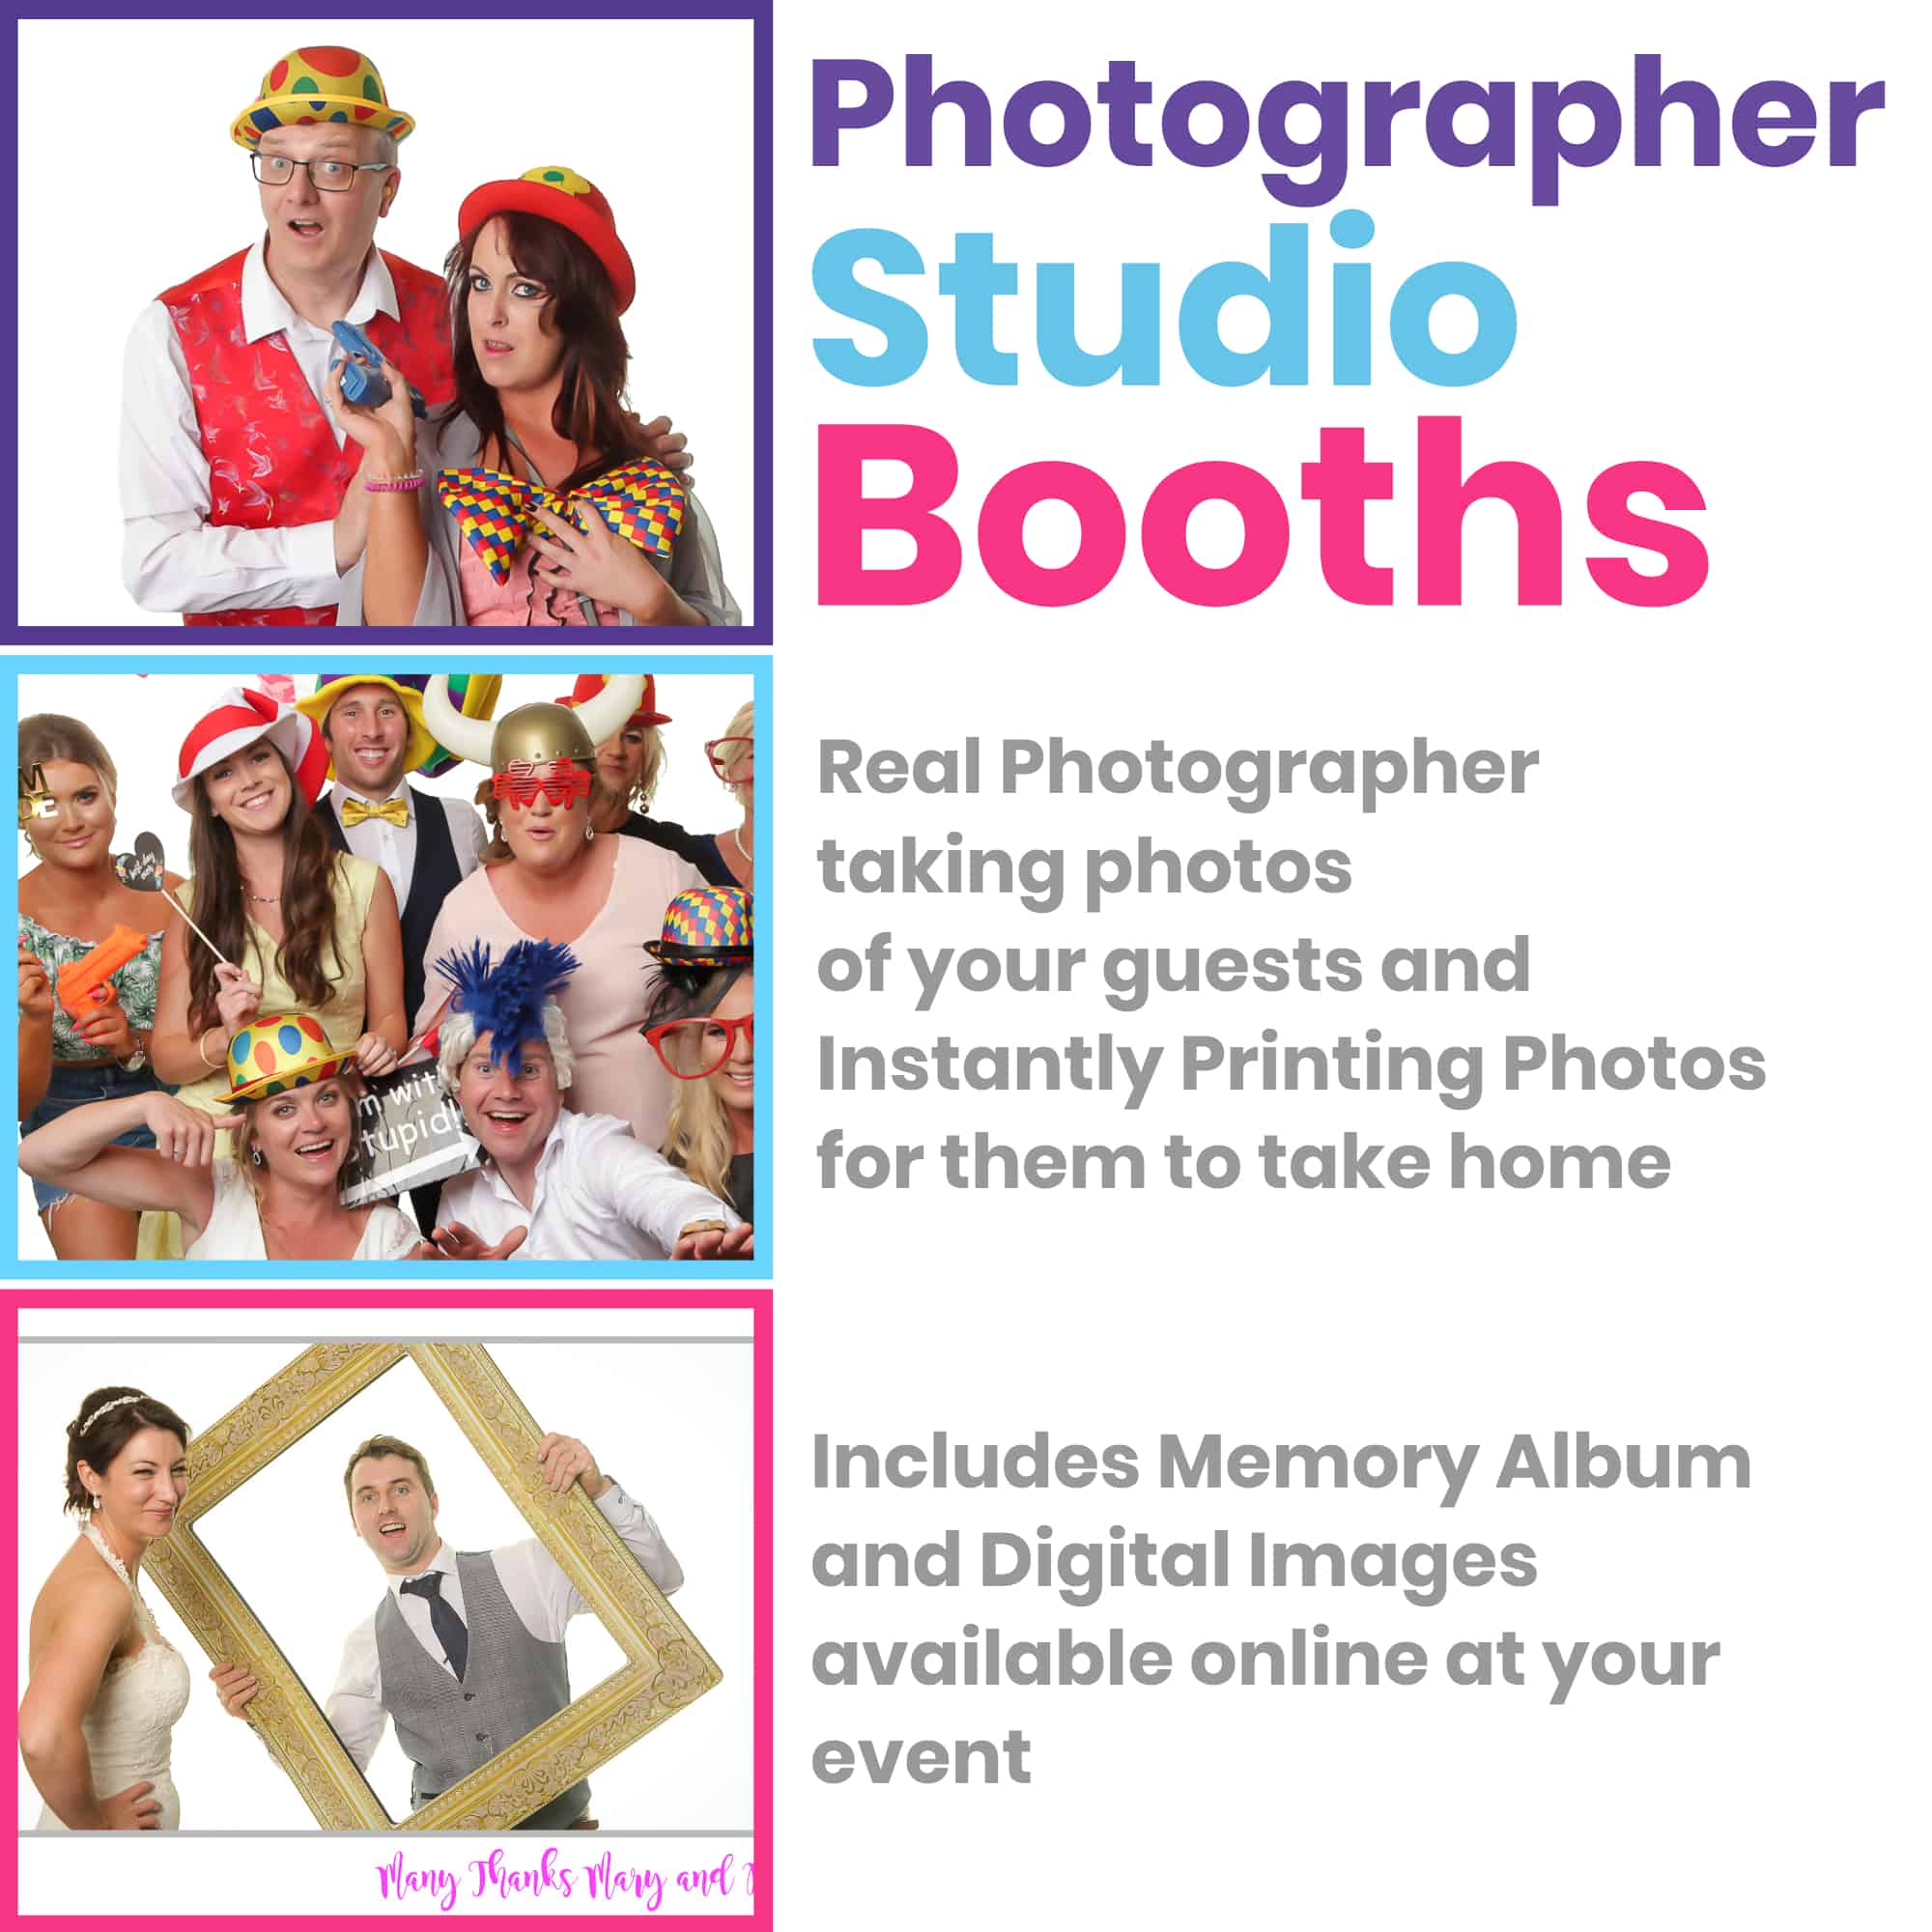 StudioBooth Square1 | Photographer Studio Booth | Frans Photo Booth Services Ireland